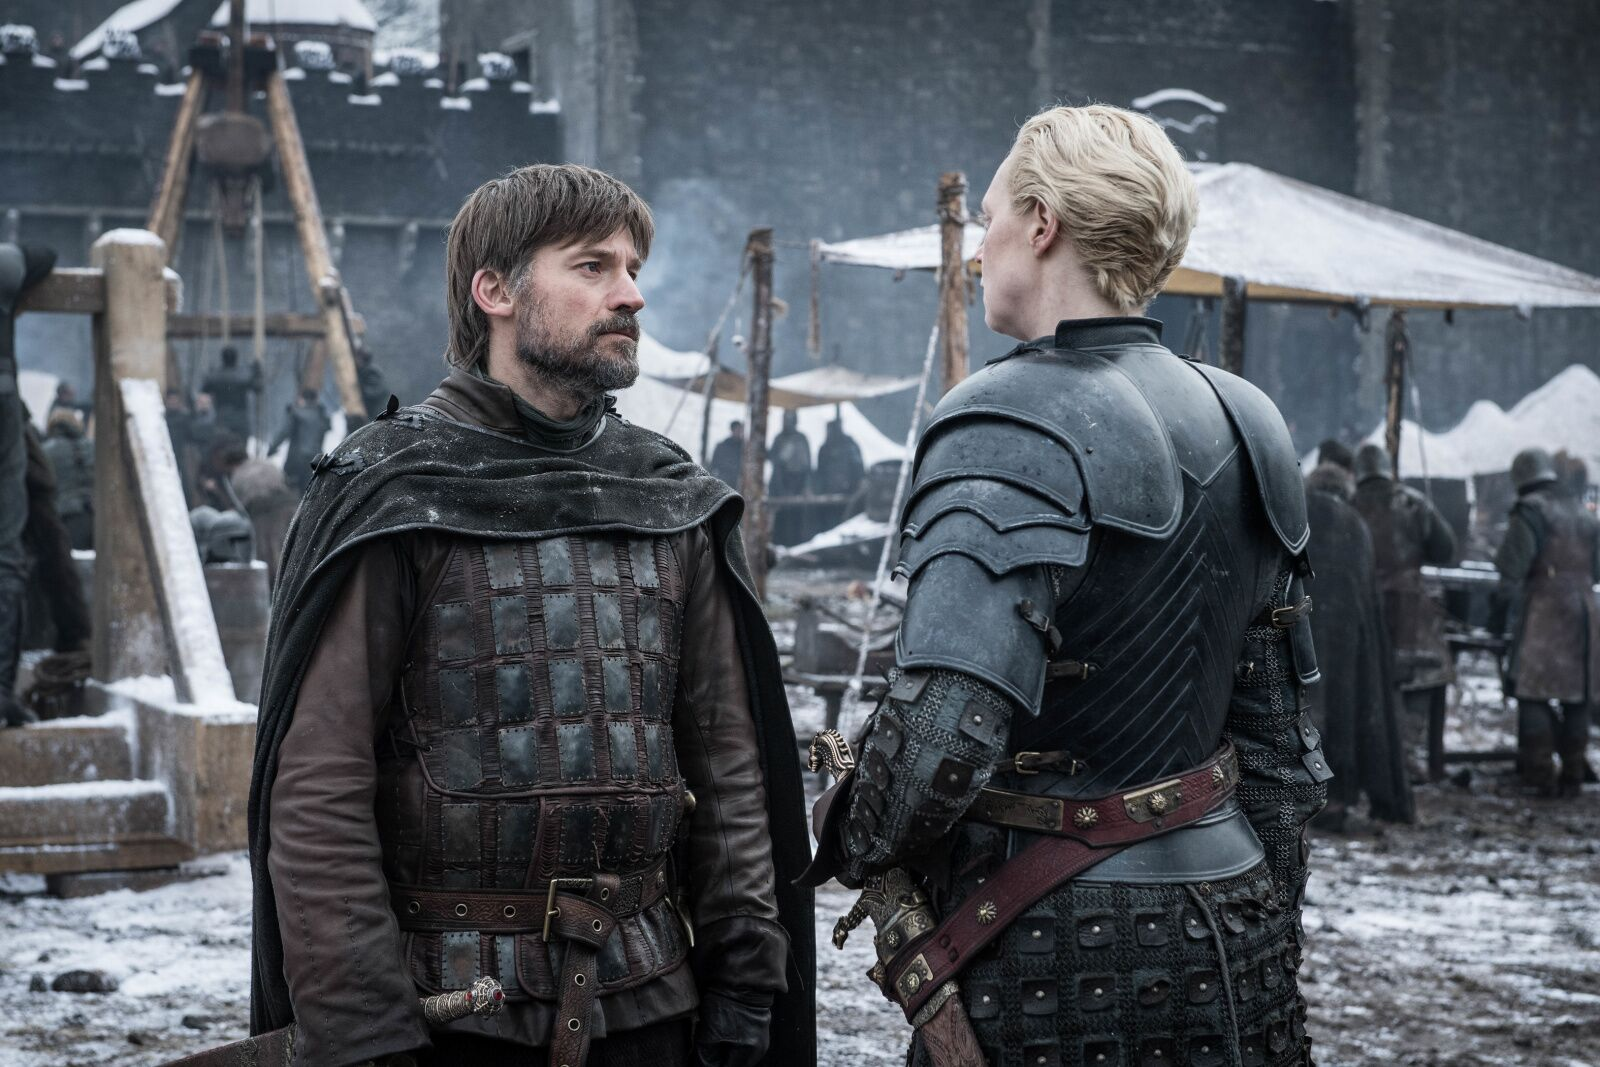 Game of Thrones: Where to watch the stars on Netflix